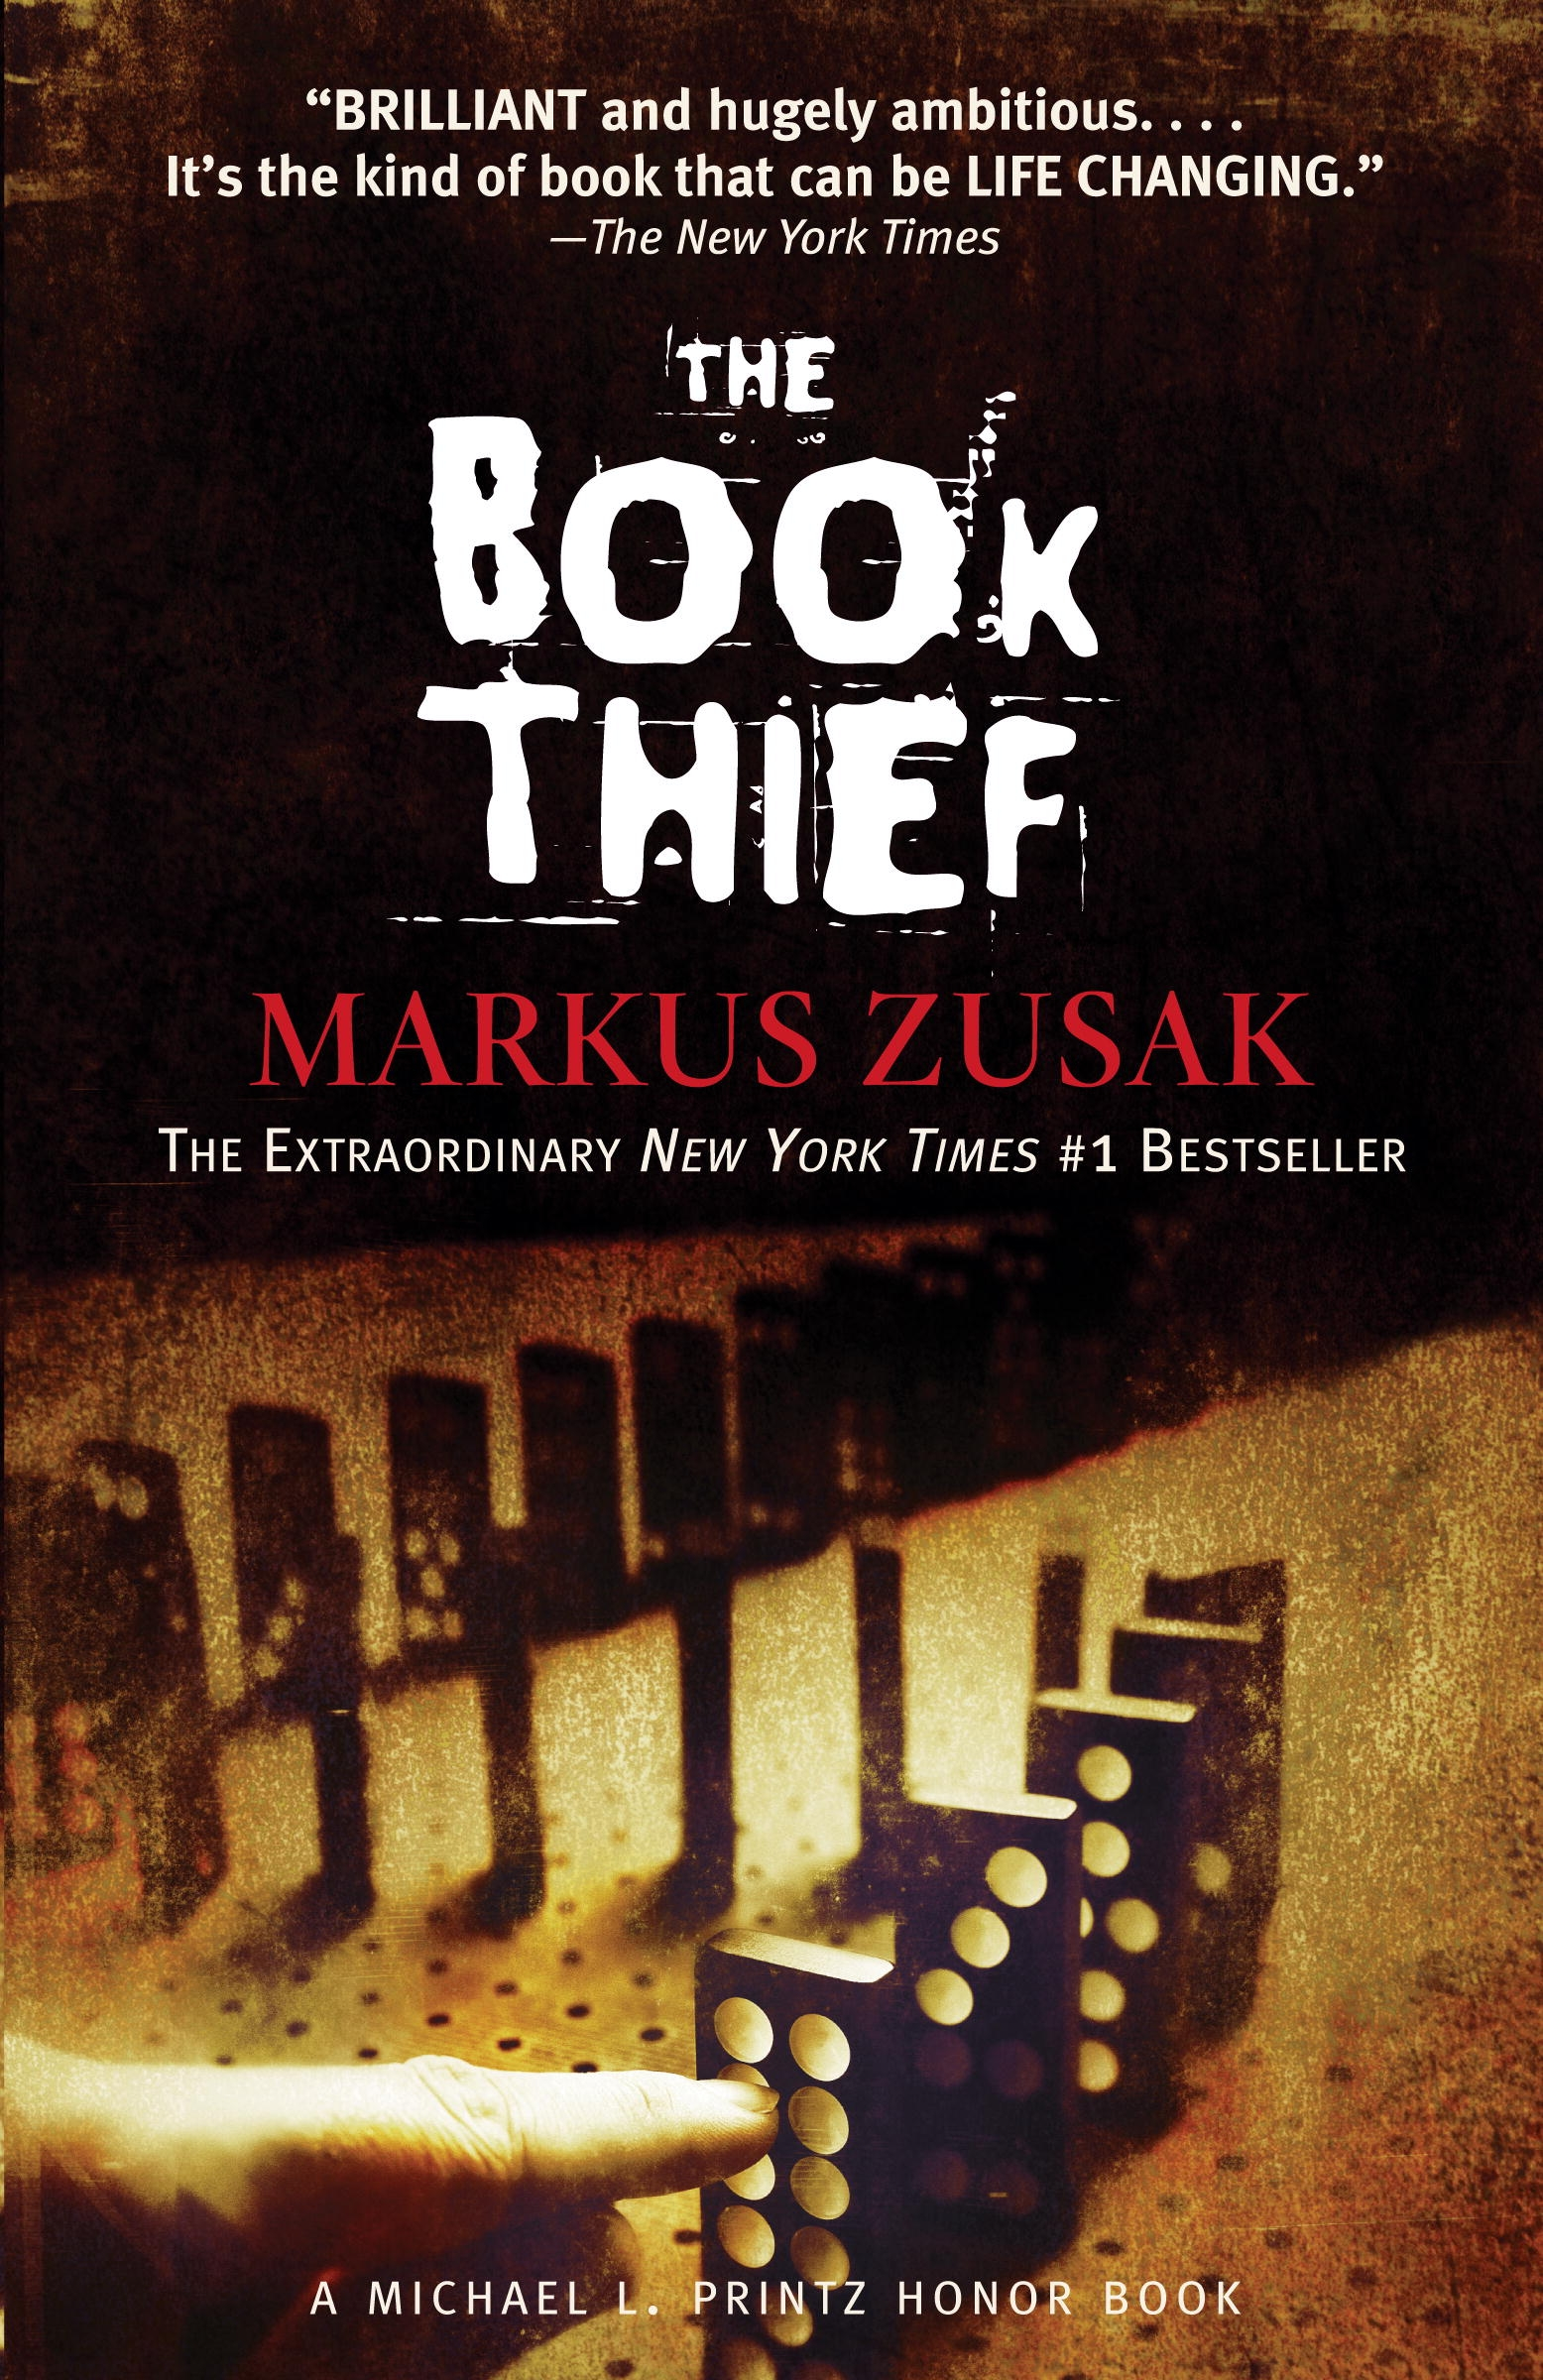 th book of thief